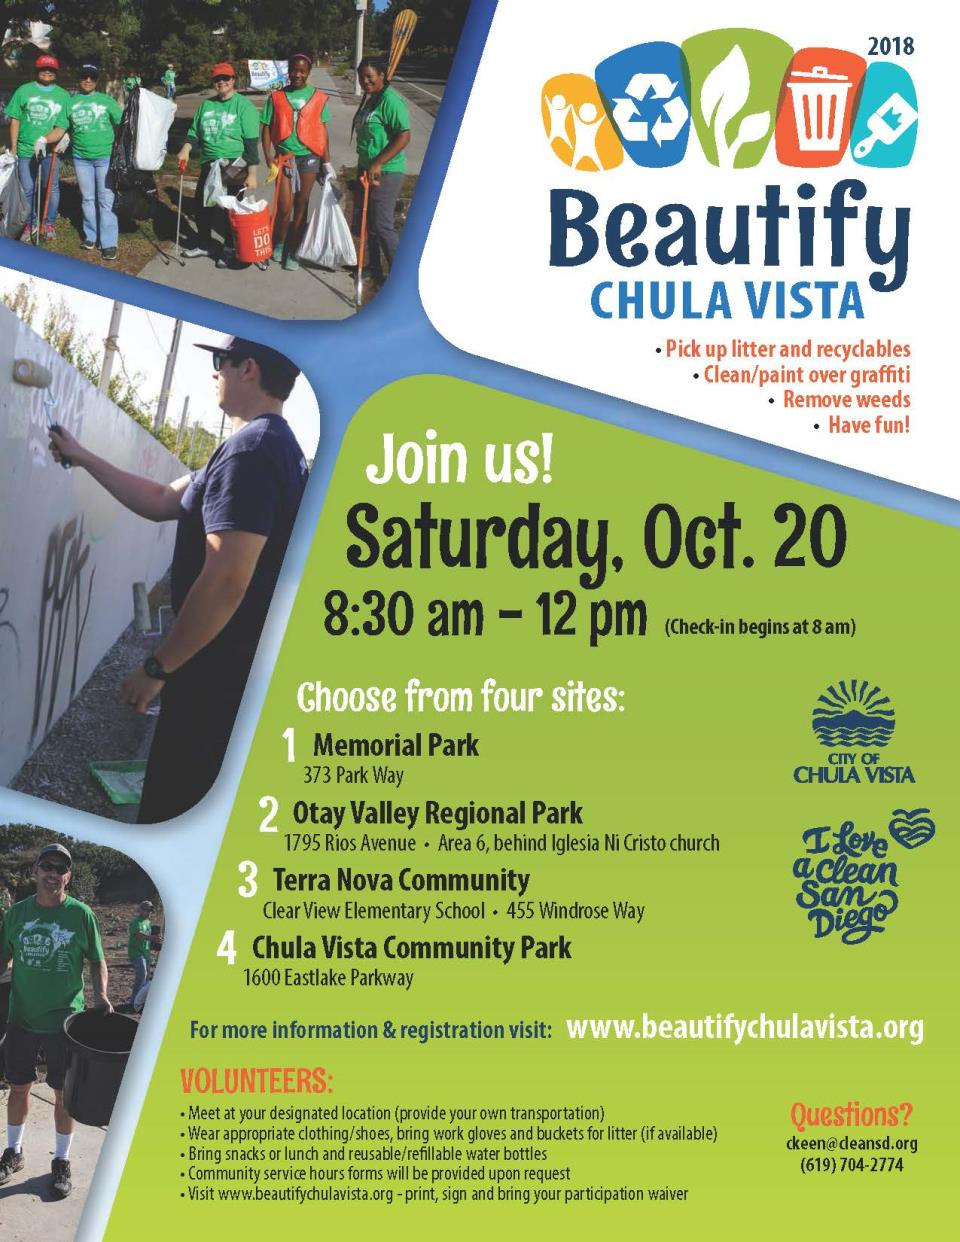 Clean city of chula vista beautify chula vista reheart Images